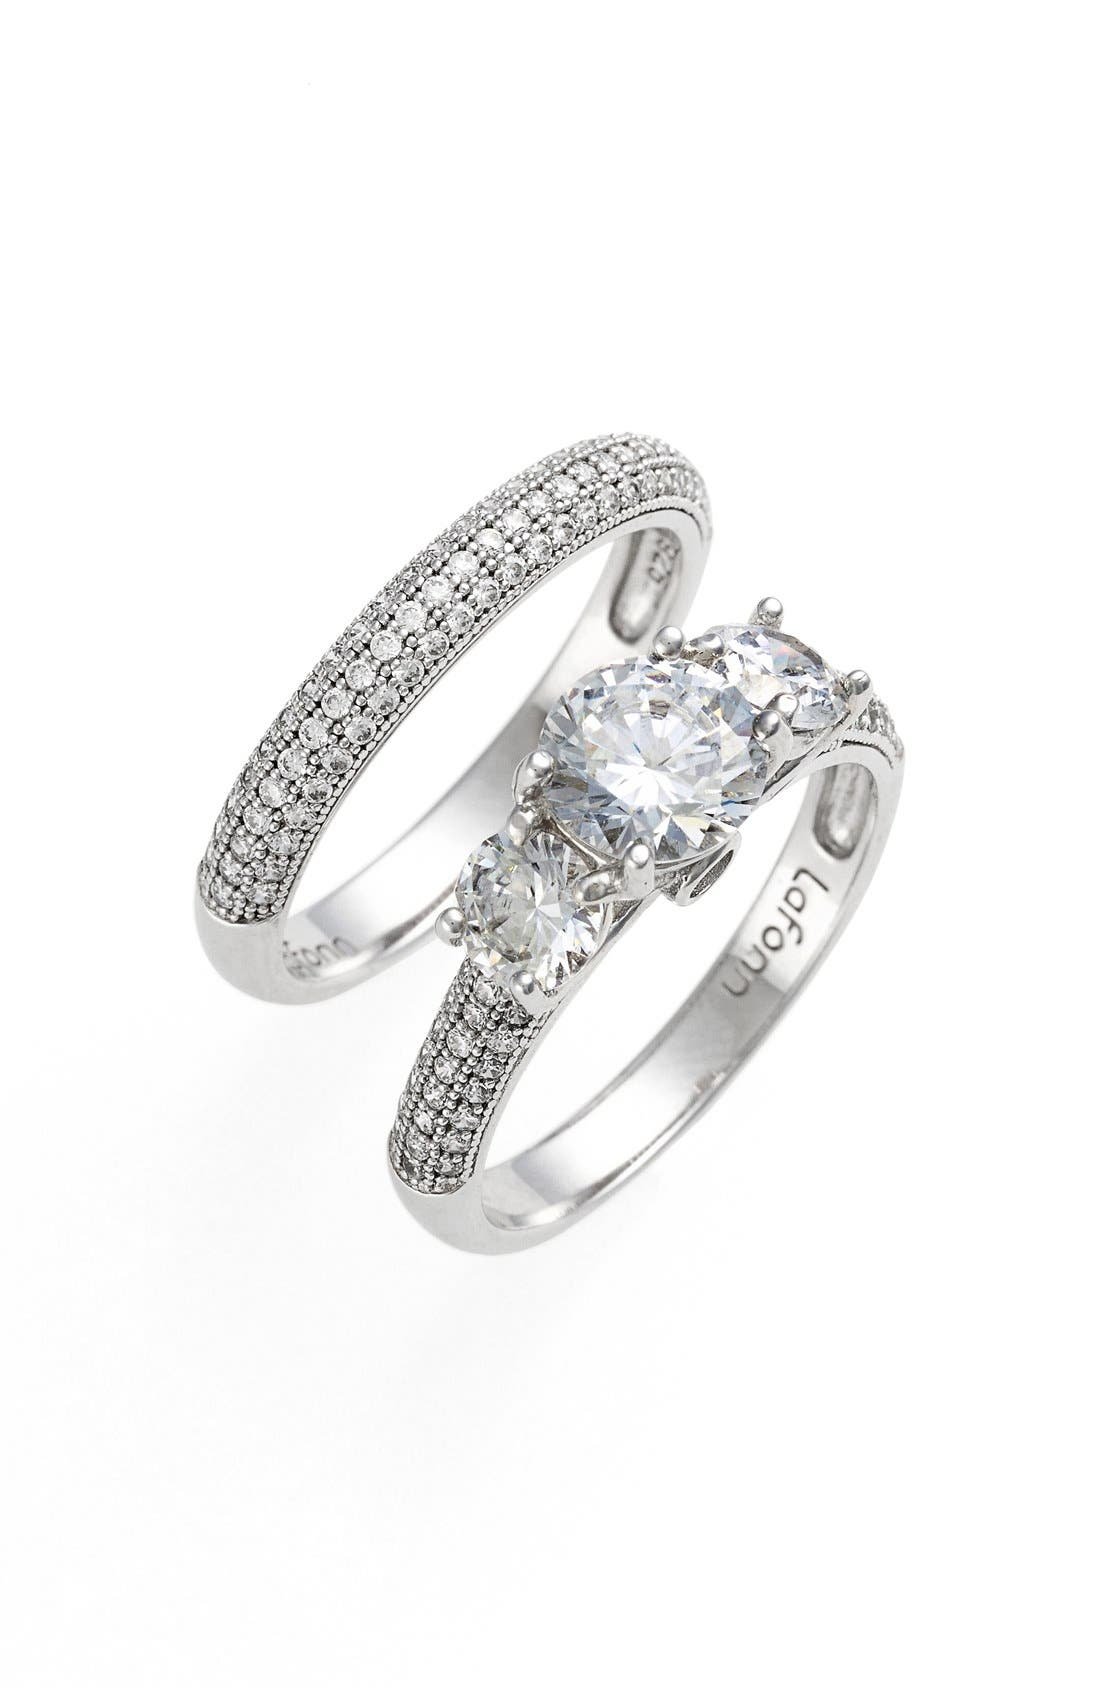 Main Image - Lafonn 'Lassaire' Engagement Ring and Band (Set of 2)